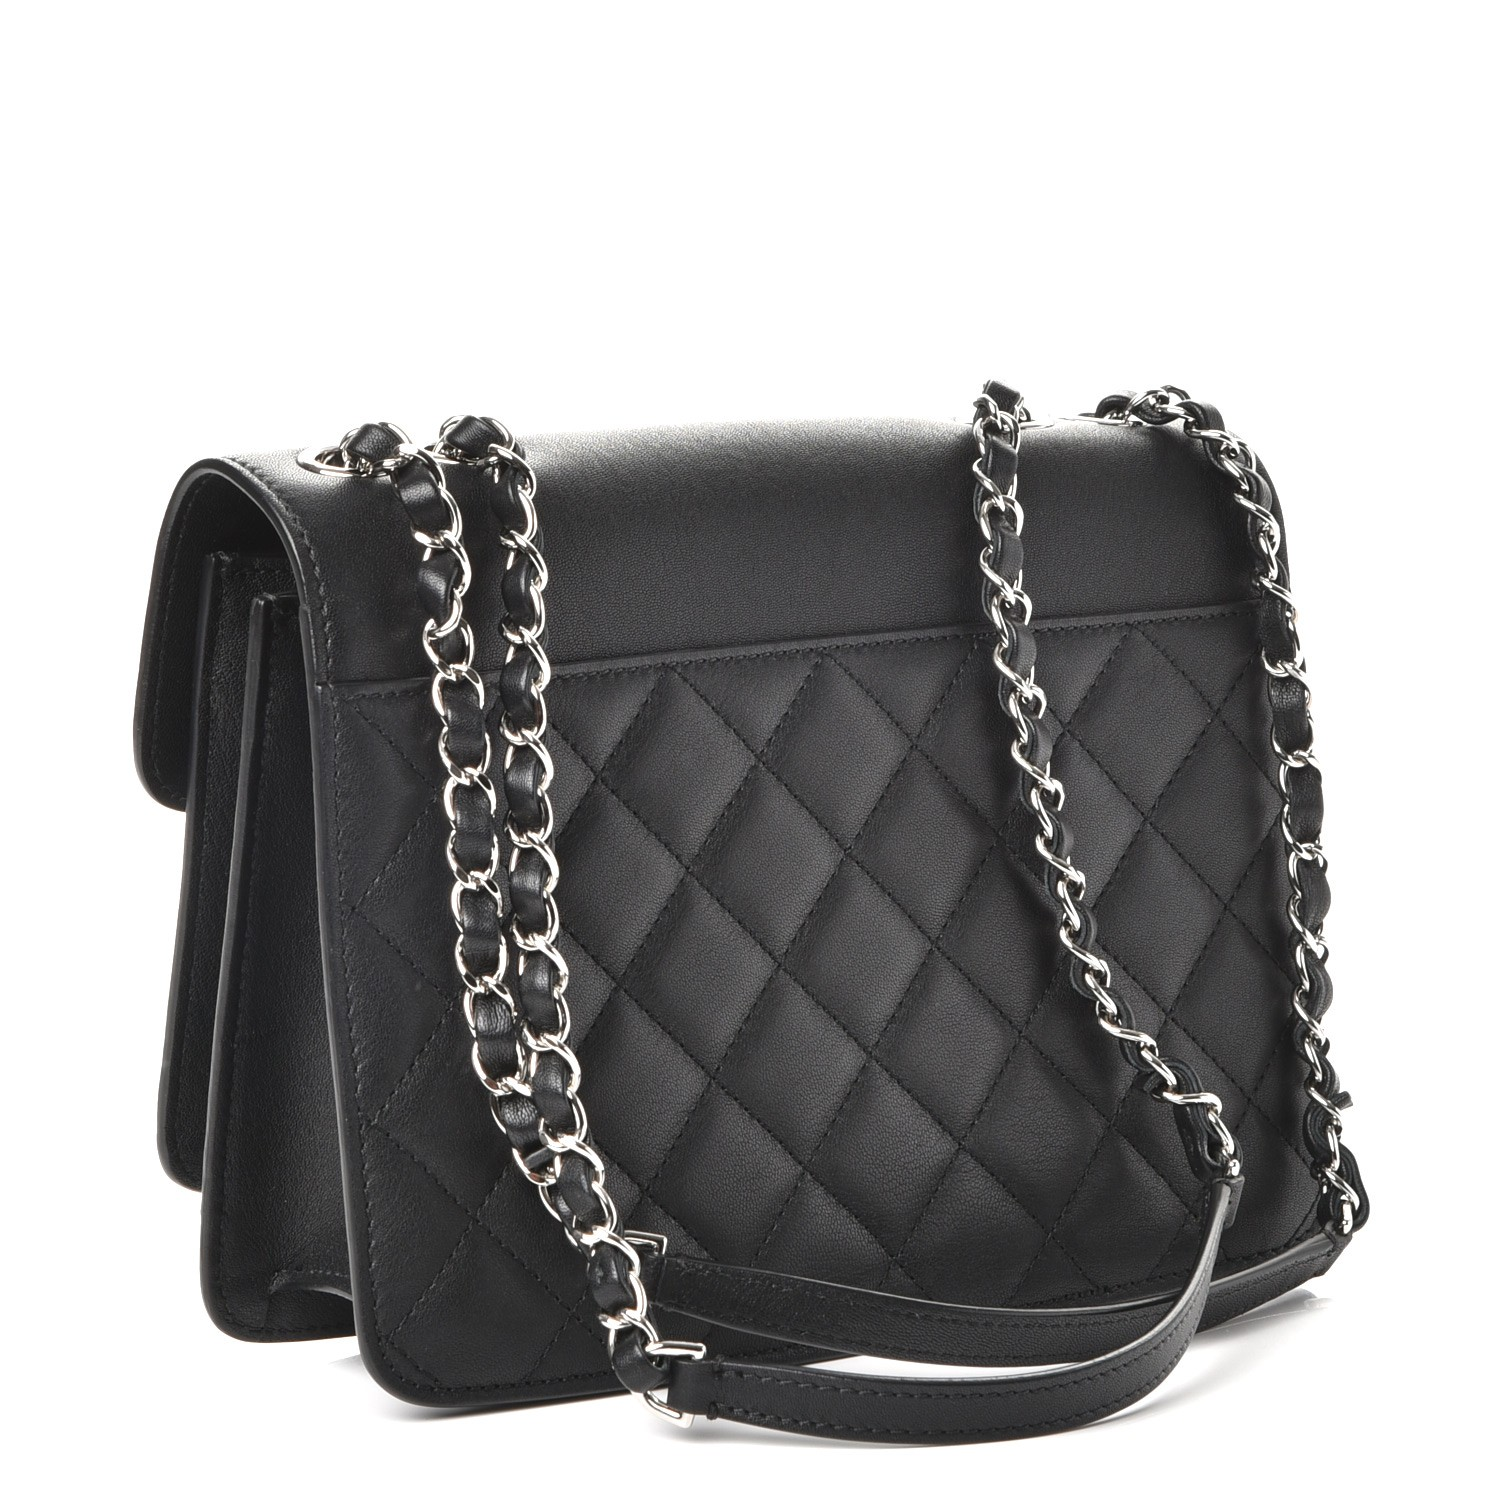 2b4f0813cc3f CHANEL Lambskin Quilted Mini Urban Companion Flap Black 235253